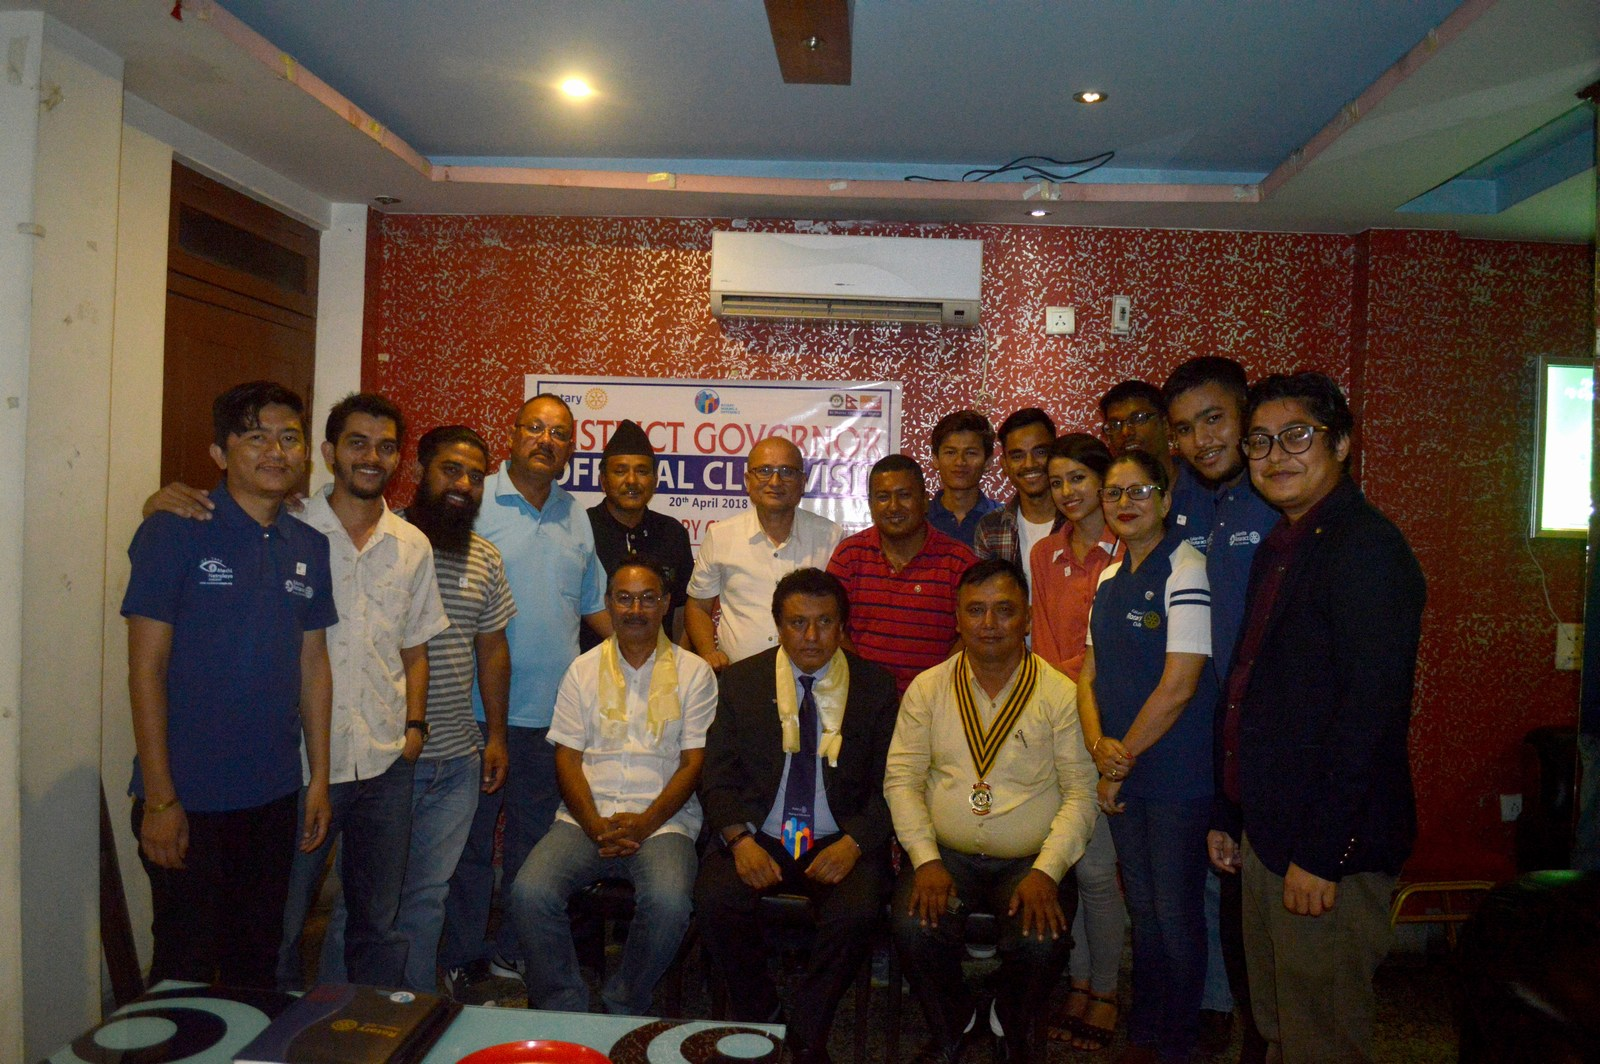 District-Governors-Official-Club-Visit-2017-18-Rotary-Club-of-Kakarvitta-19